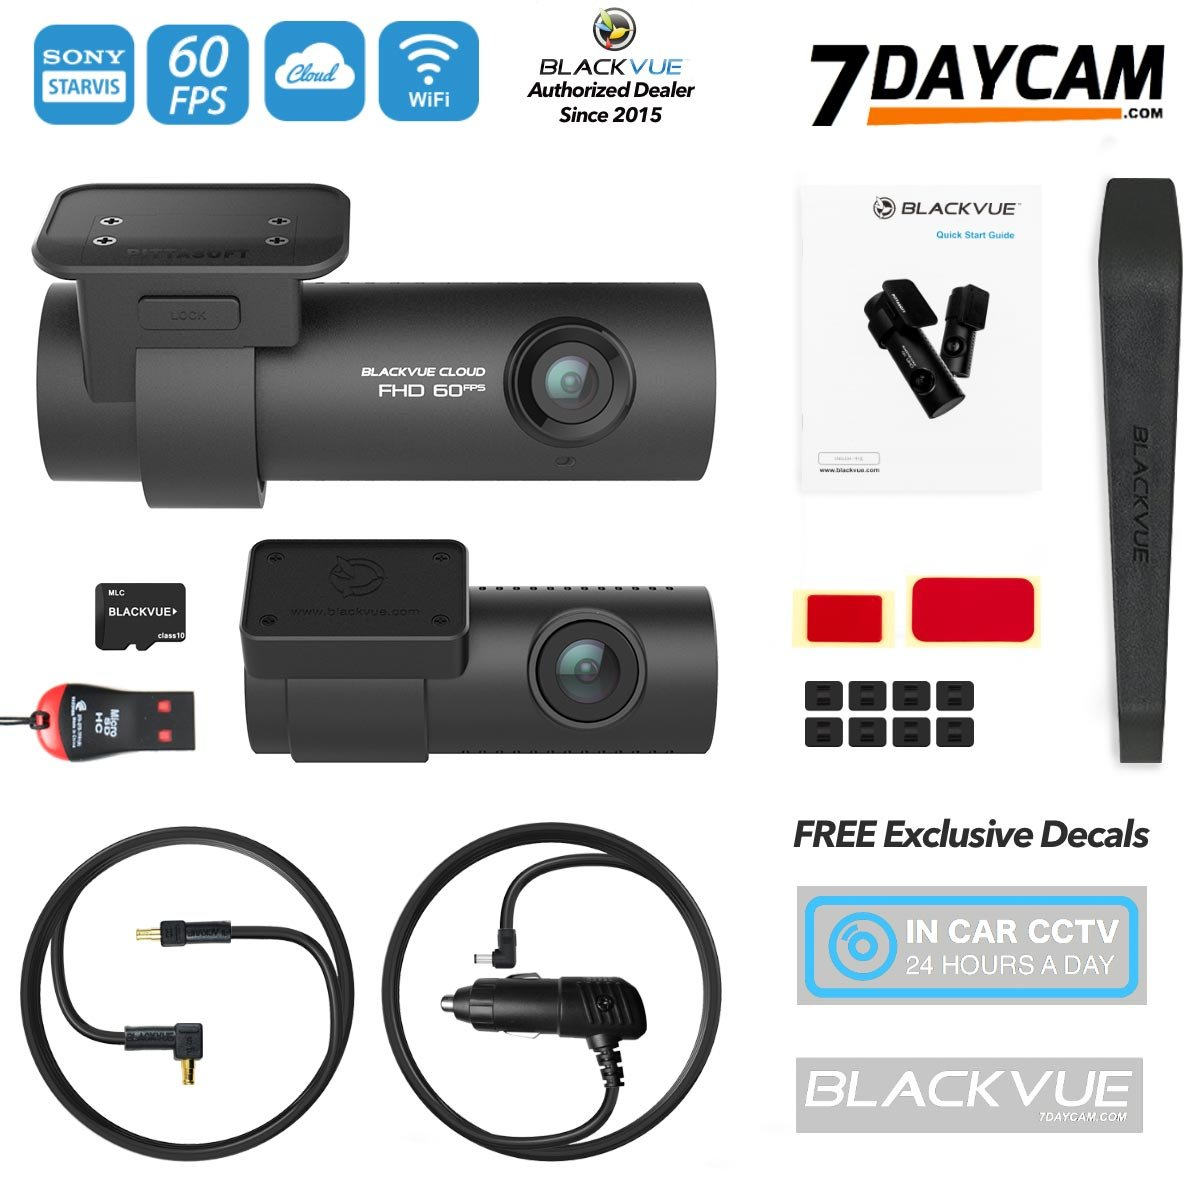 BlackVue DR750S-2CH 64GB Micro SD Card1080P 60FPS SONY Starvis Night Vision Parking Mode BONUS Free BlackVue Window Decal